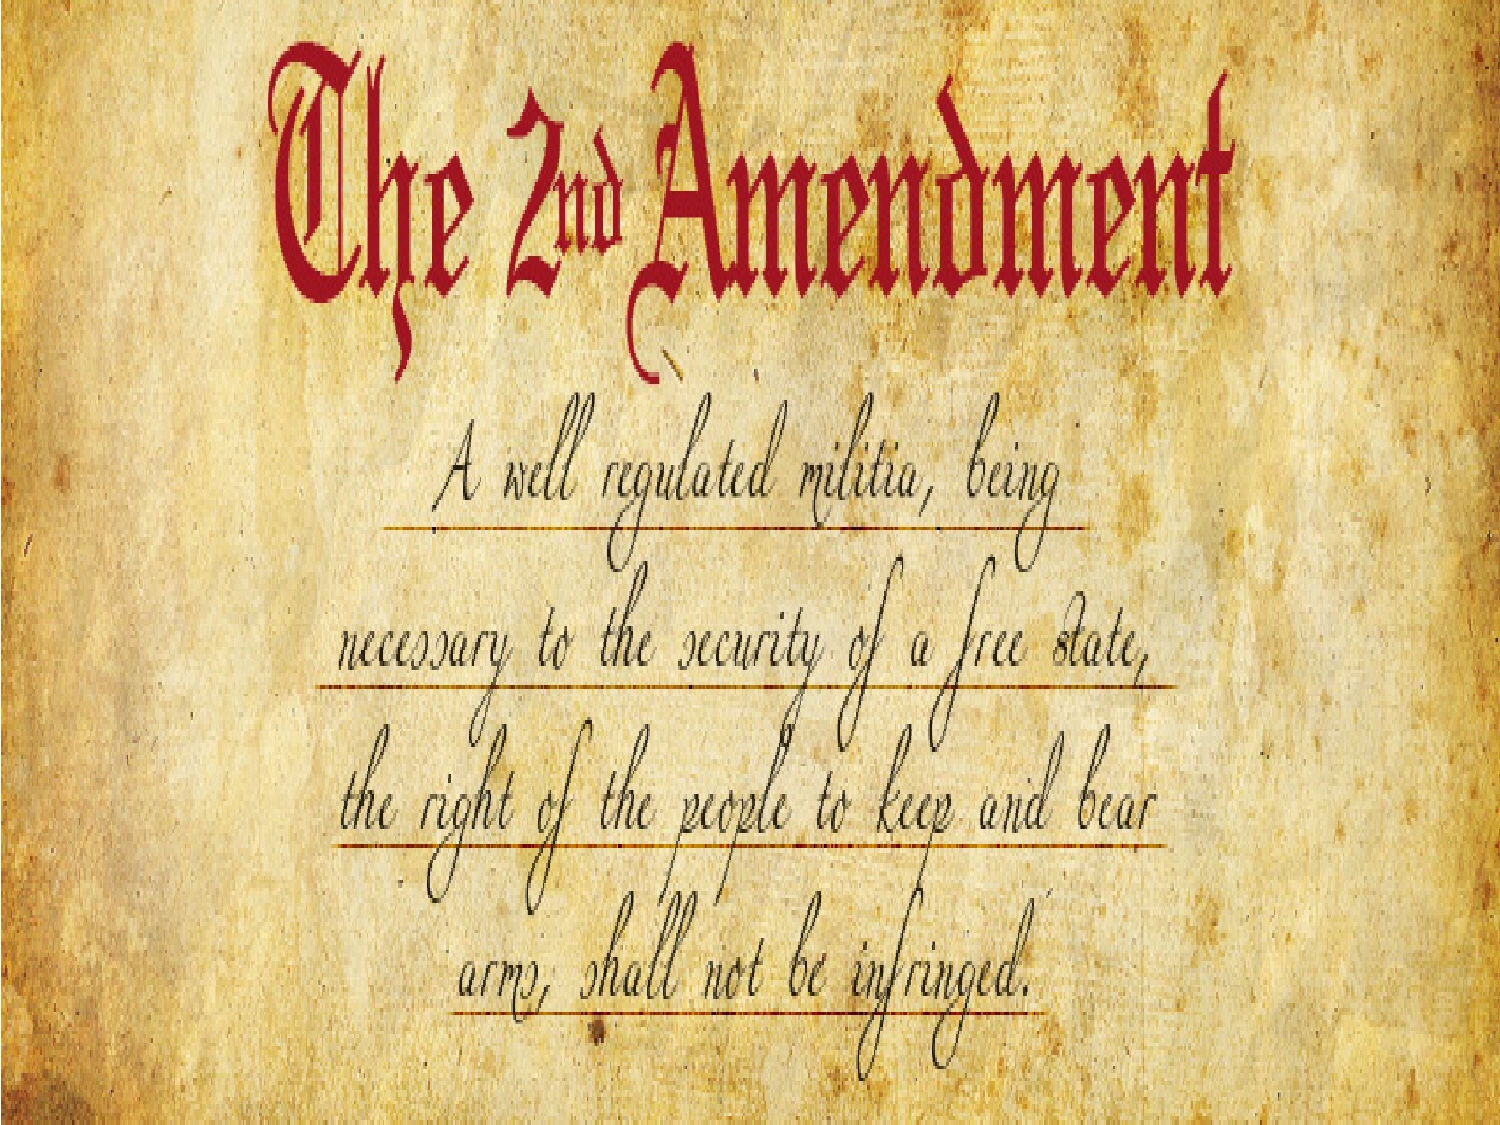 http://pearlsofprofundity.files.wordpress.com/2013/03/second-amendment-of-the-constit-2.jpg